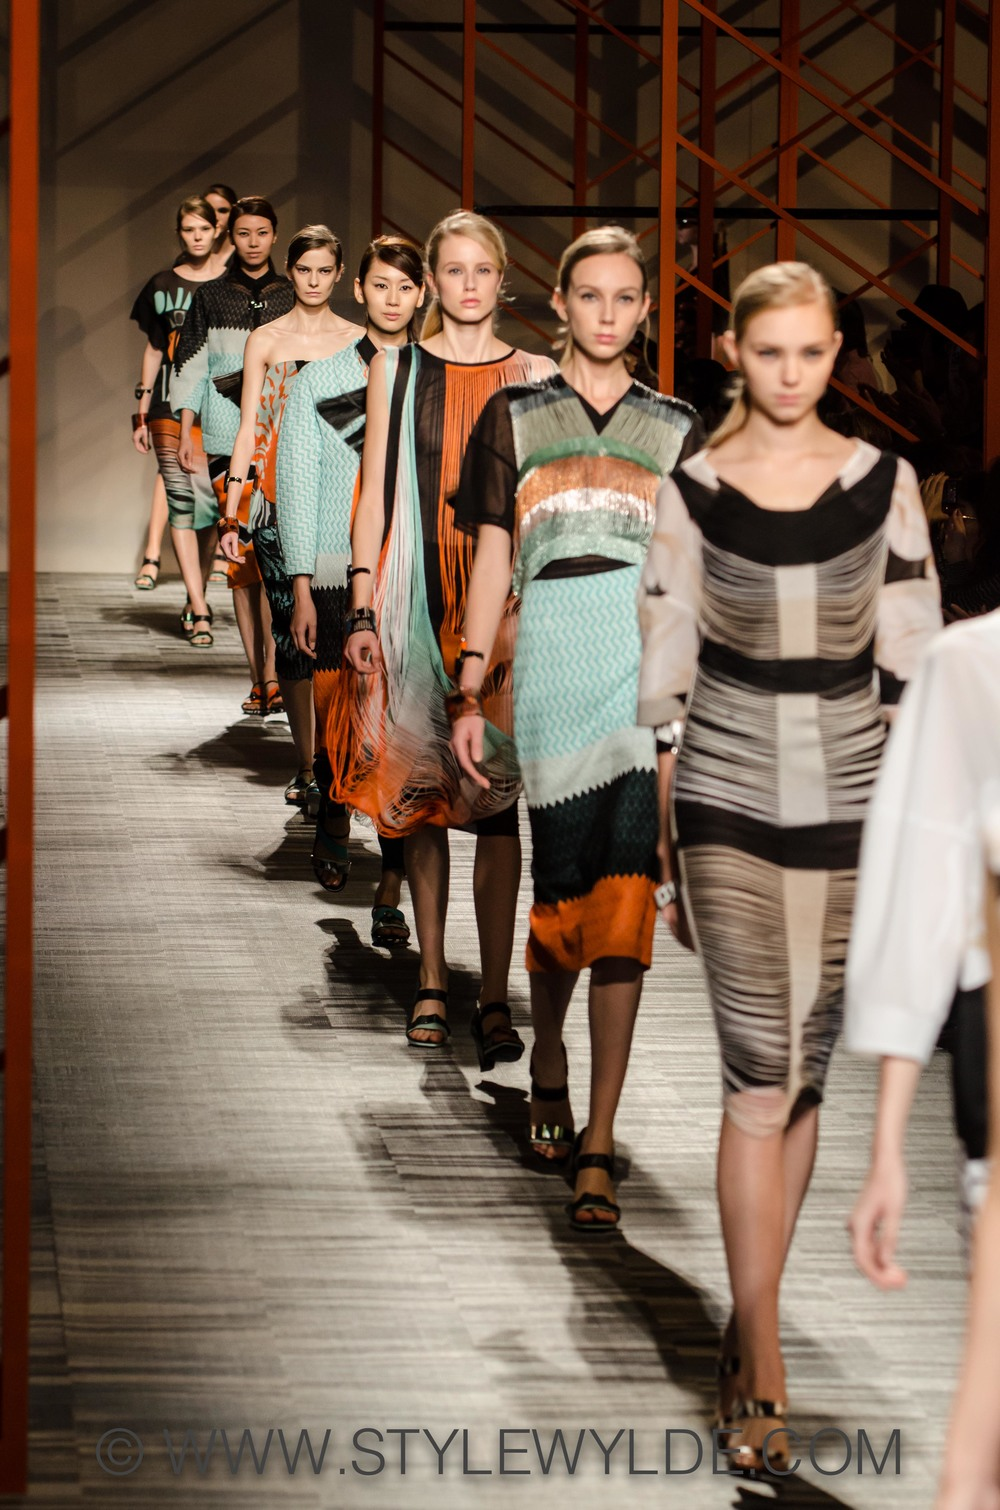 STYLEWYLDE_Missoni_SS2014 (1 of 1)-26.jpg